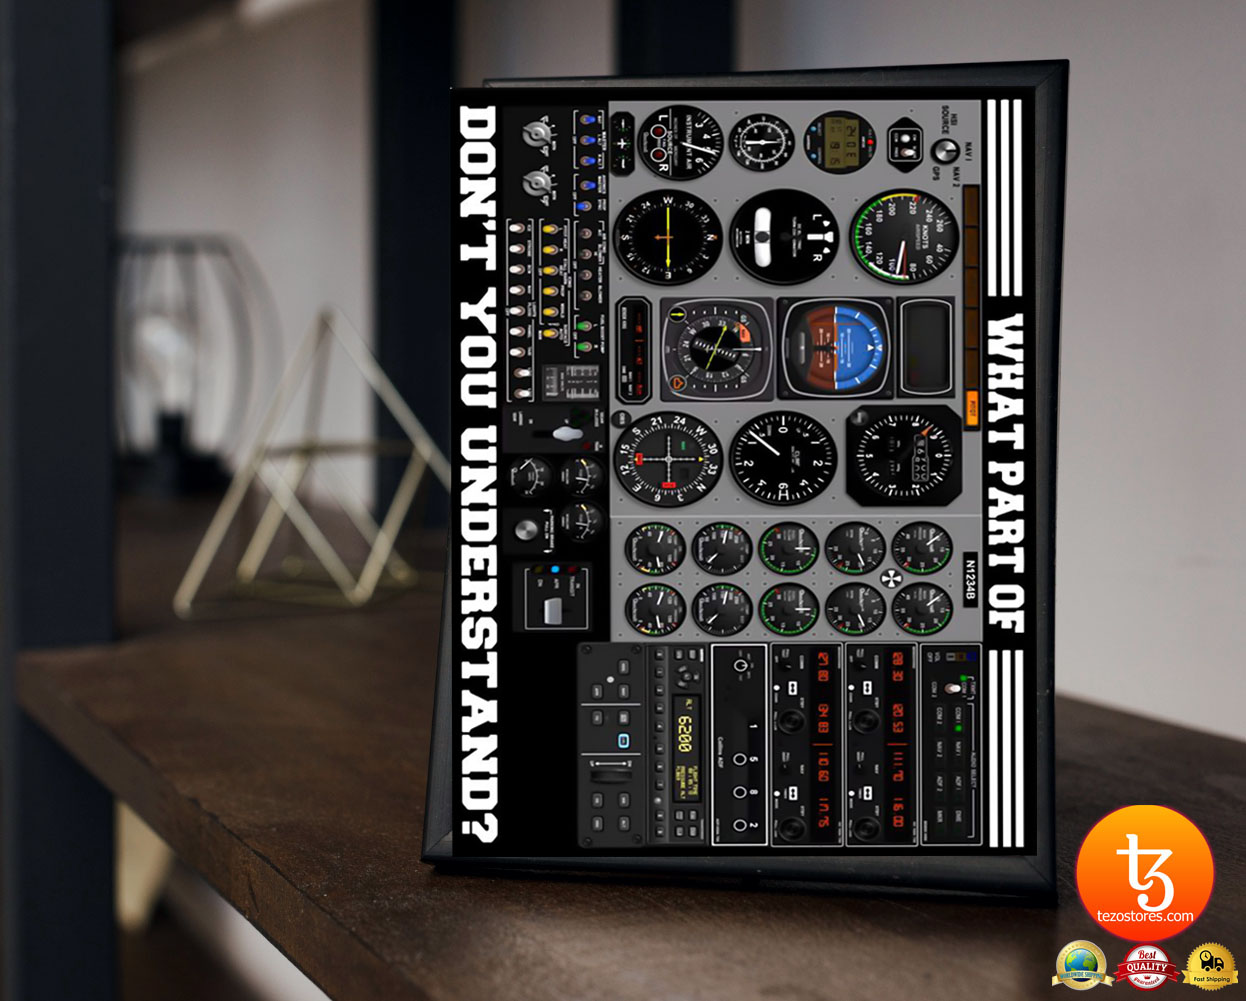 Pilot Flight instruments what part of don't you understand poster